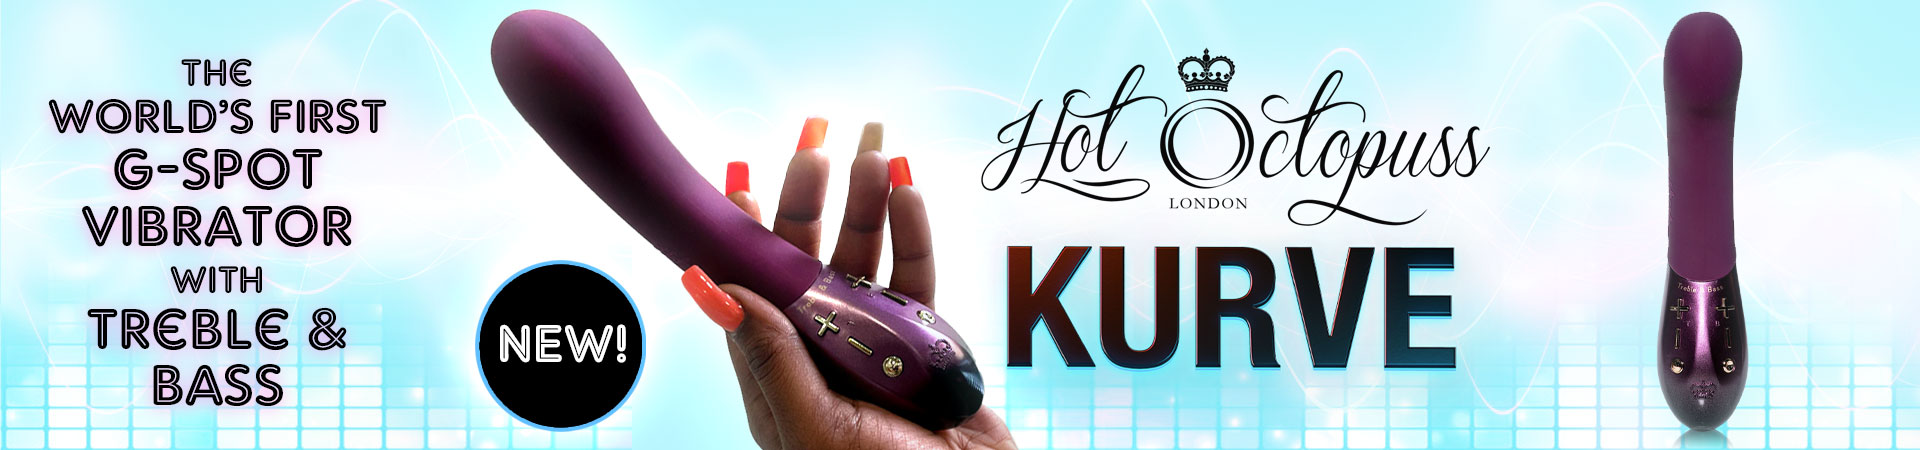 NEW! Kurve From Hot Octopuss